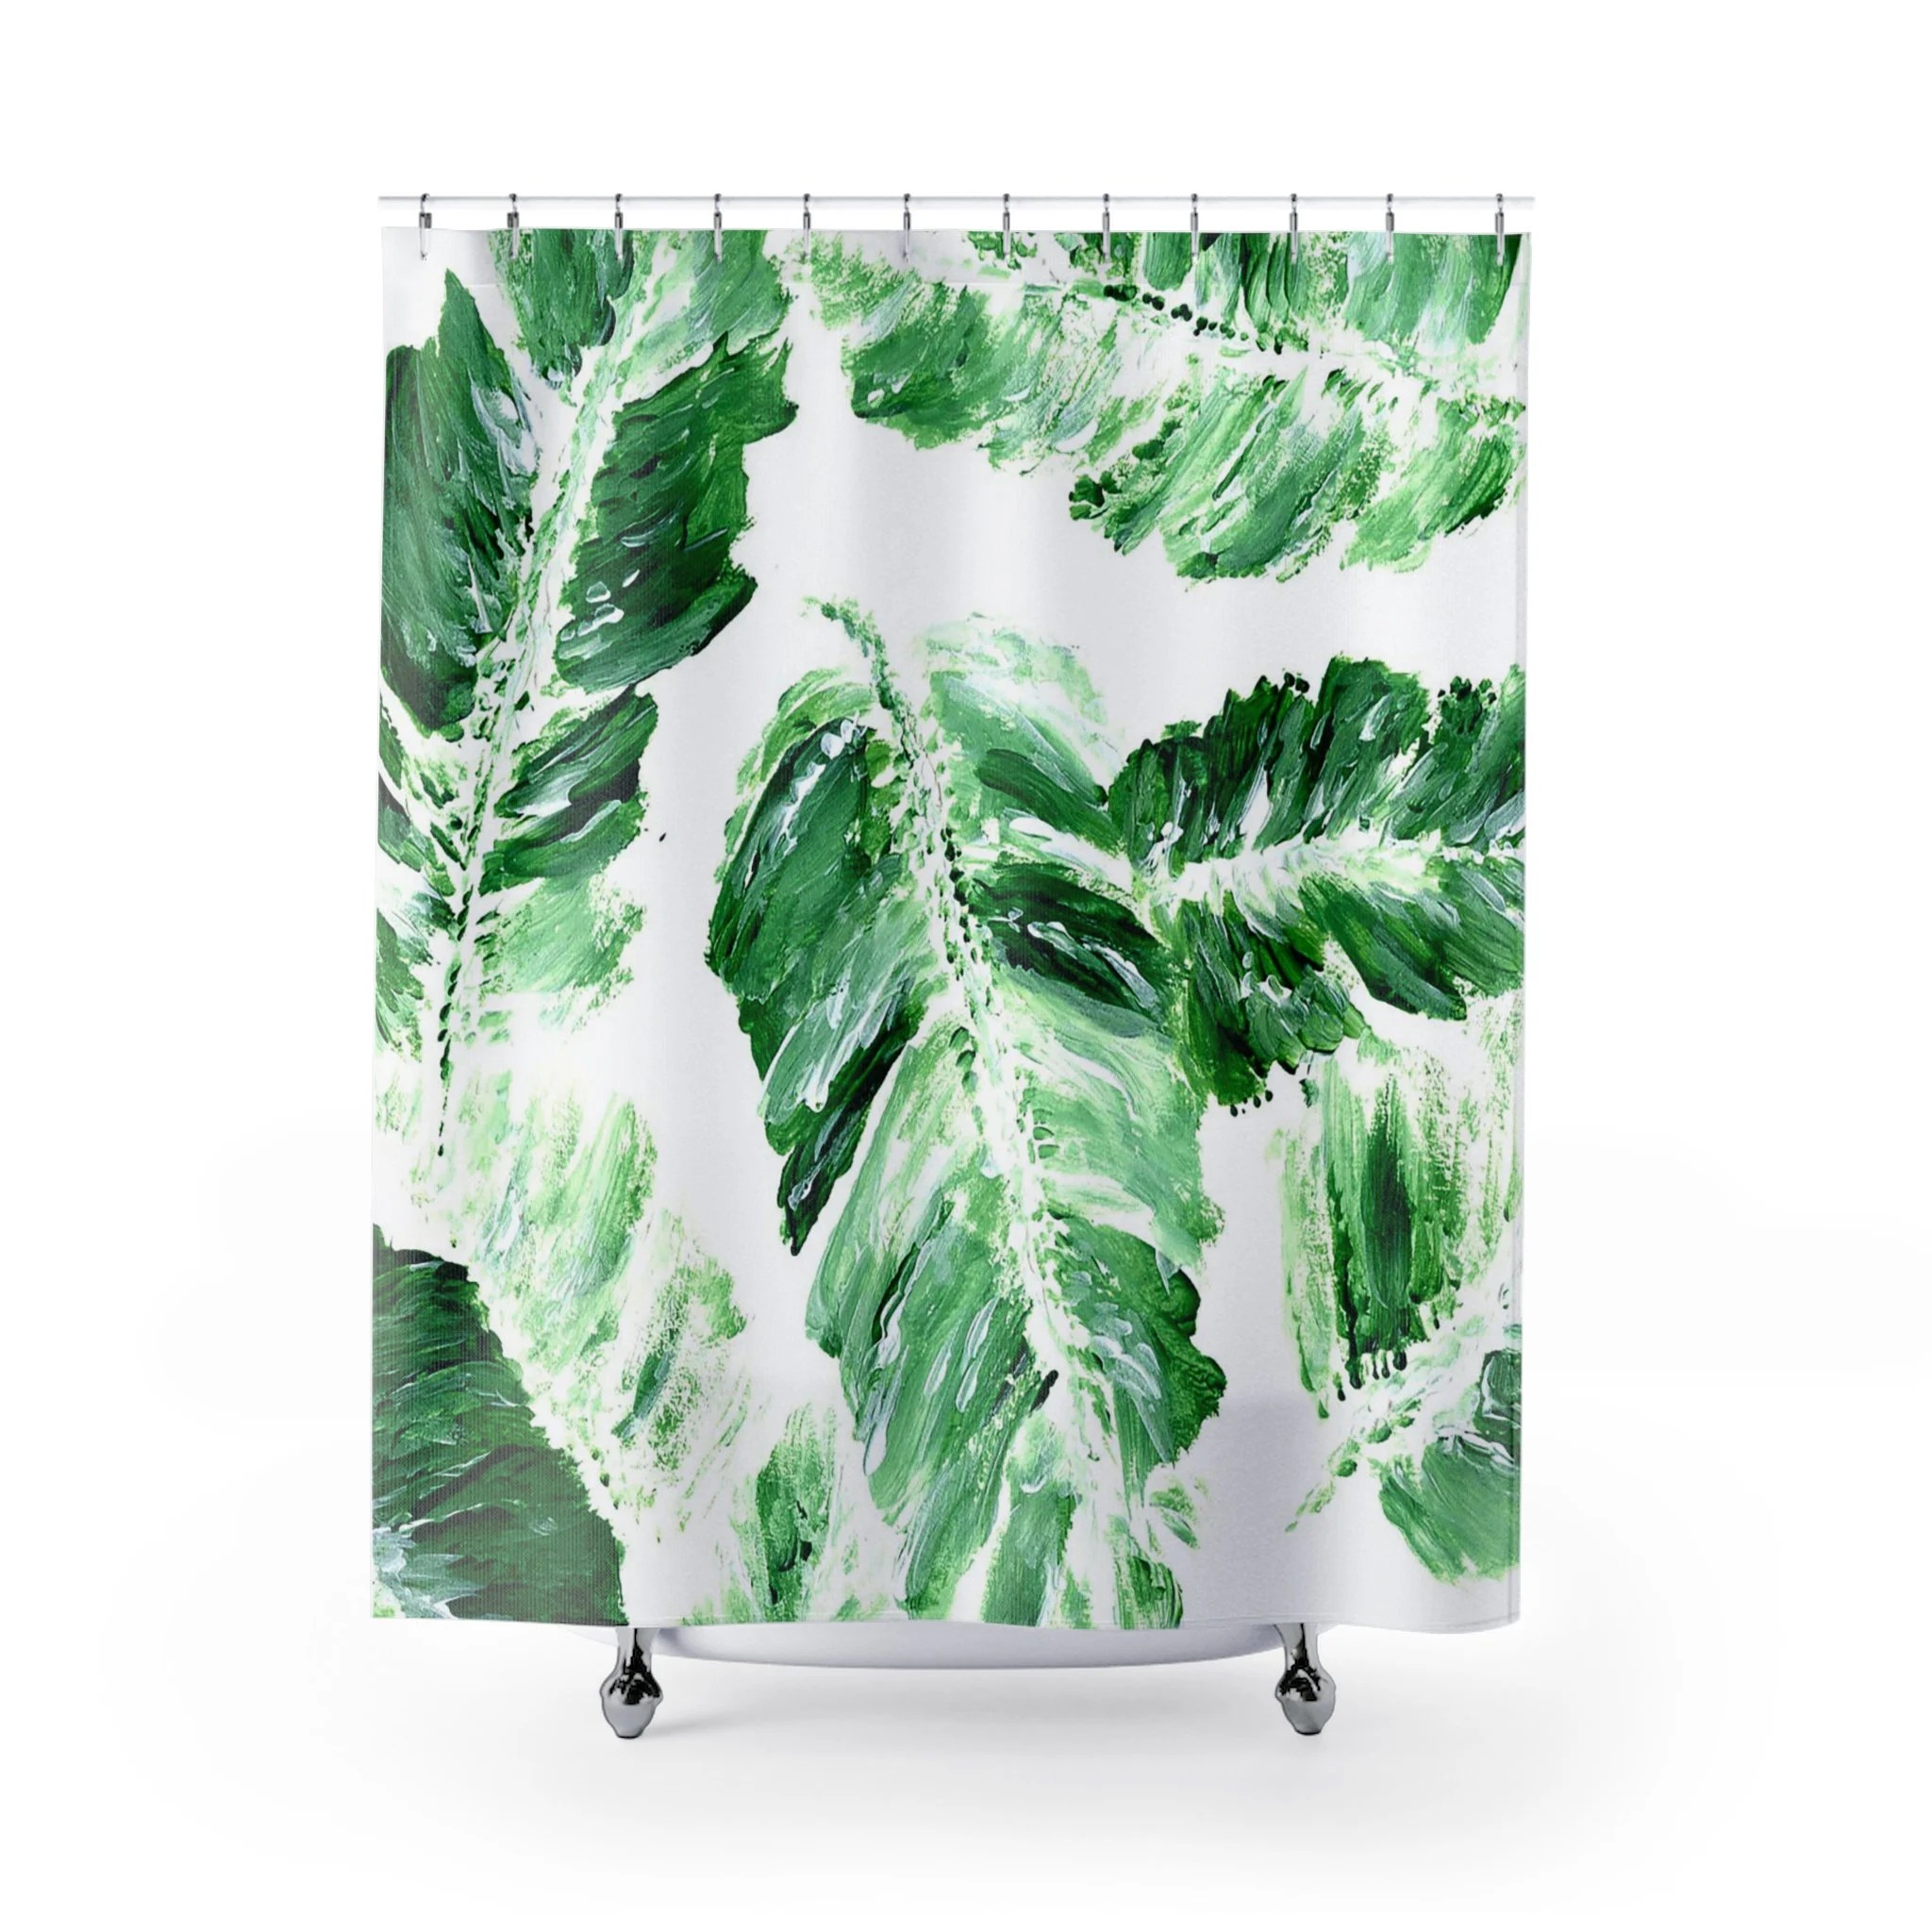 Banana Leaf Shower Curtain Banana Leaf Shower Curtain Palm Leaf Shower Curtain Banana Leaf Curtain Palm Leaf Curtain Palm Leaf Bathroom Banana Leaves